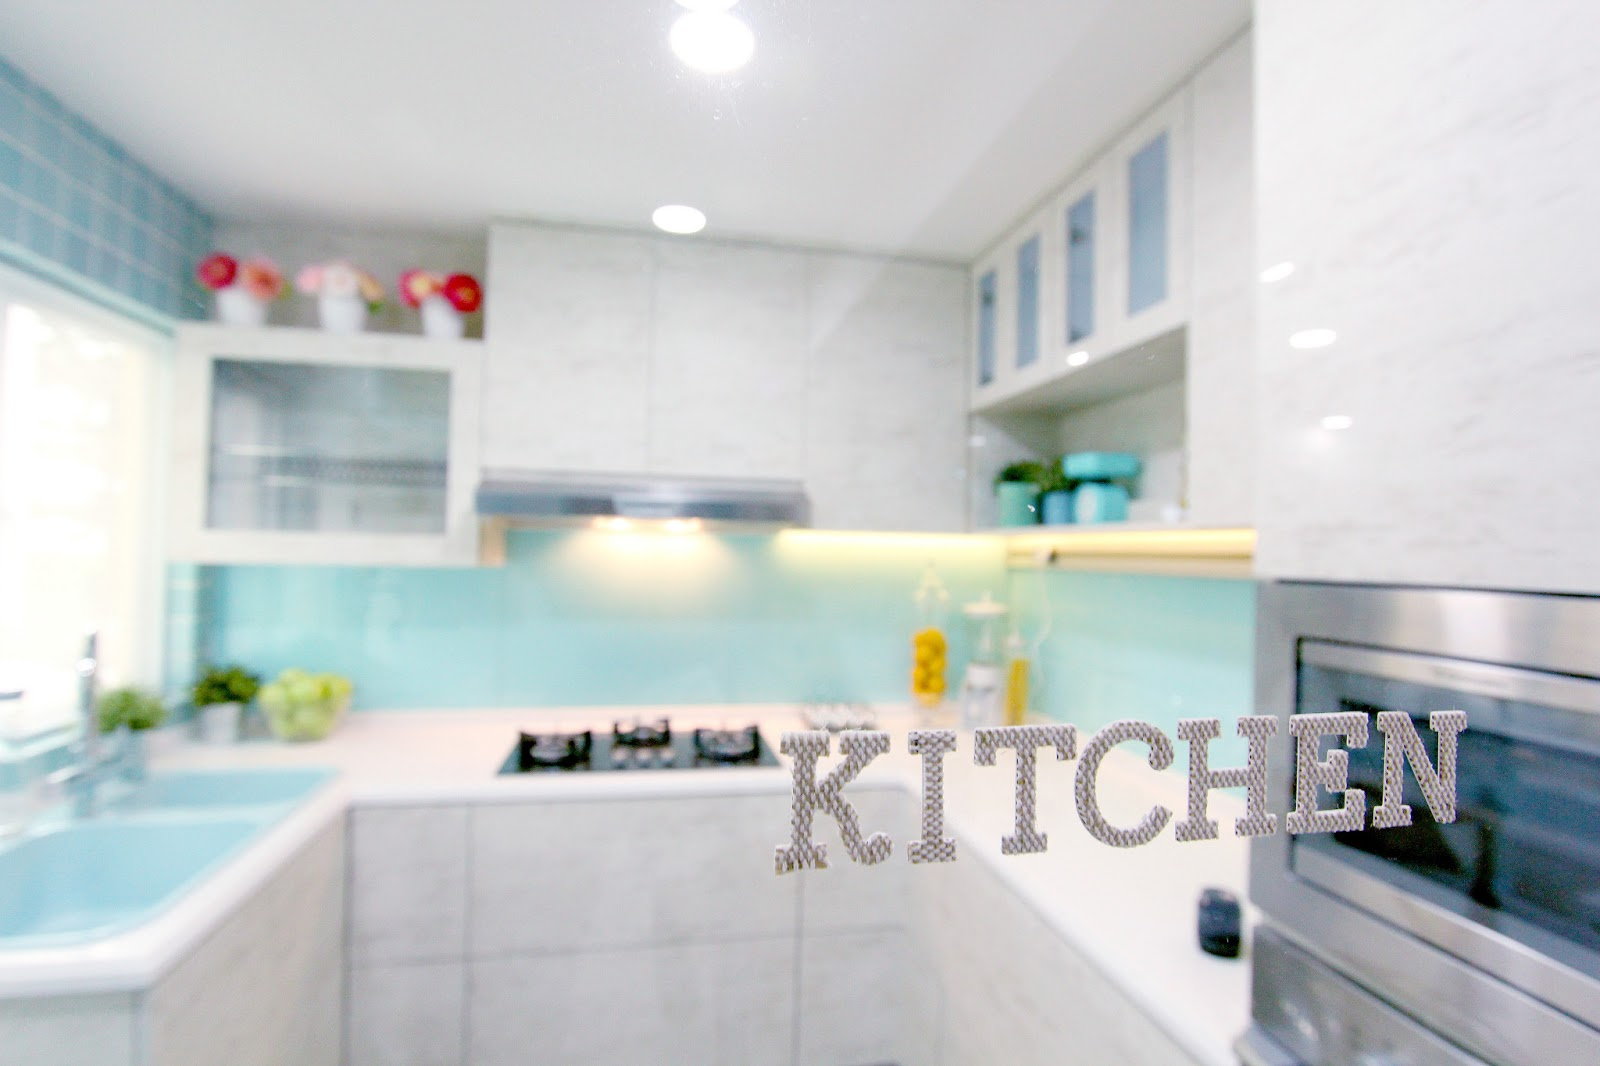 Xiaxue Stories Home Decor Part 1 Living Room And Kitchen